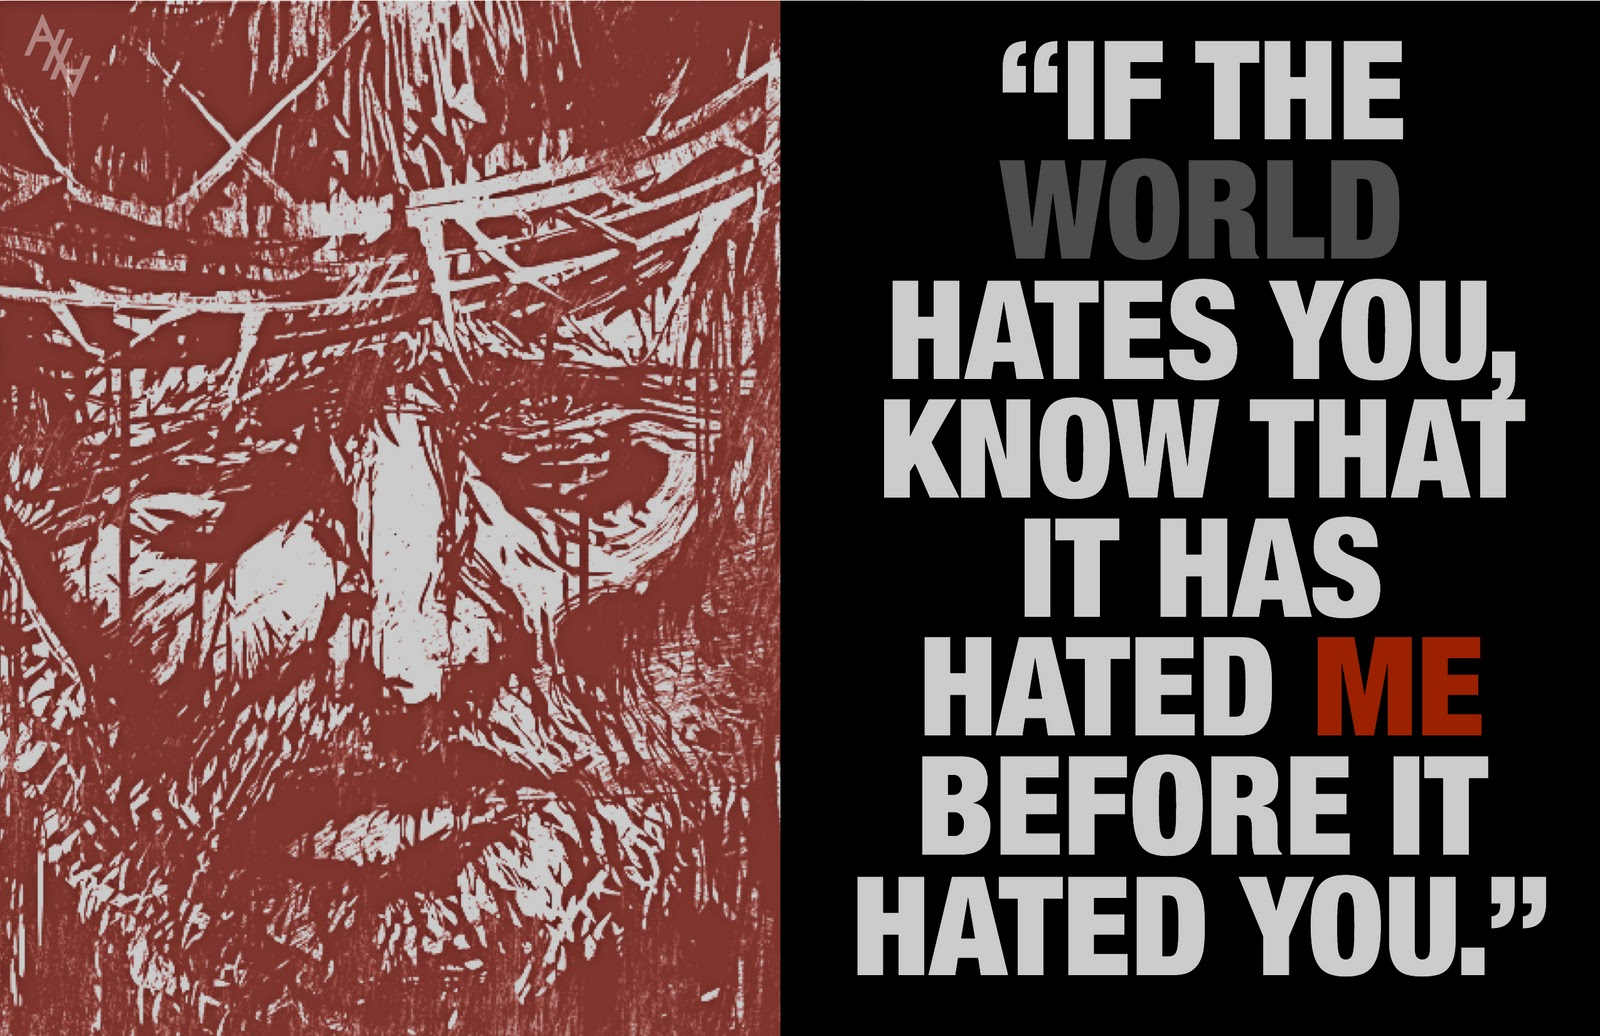 The+World+Will+Hate+You If the world hates you